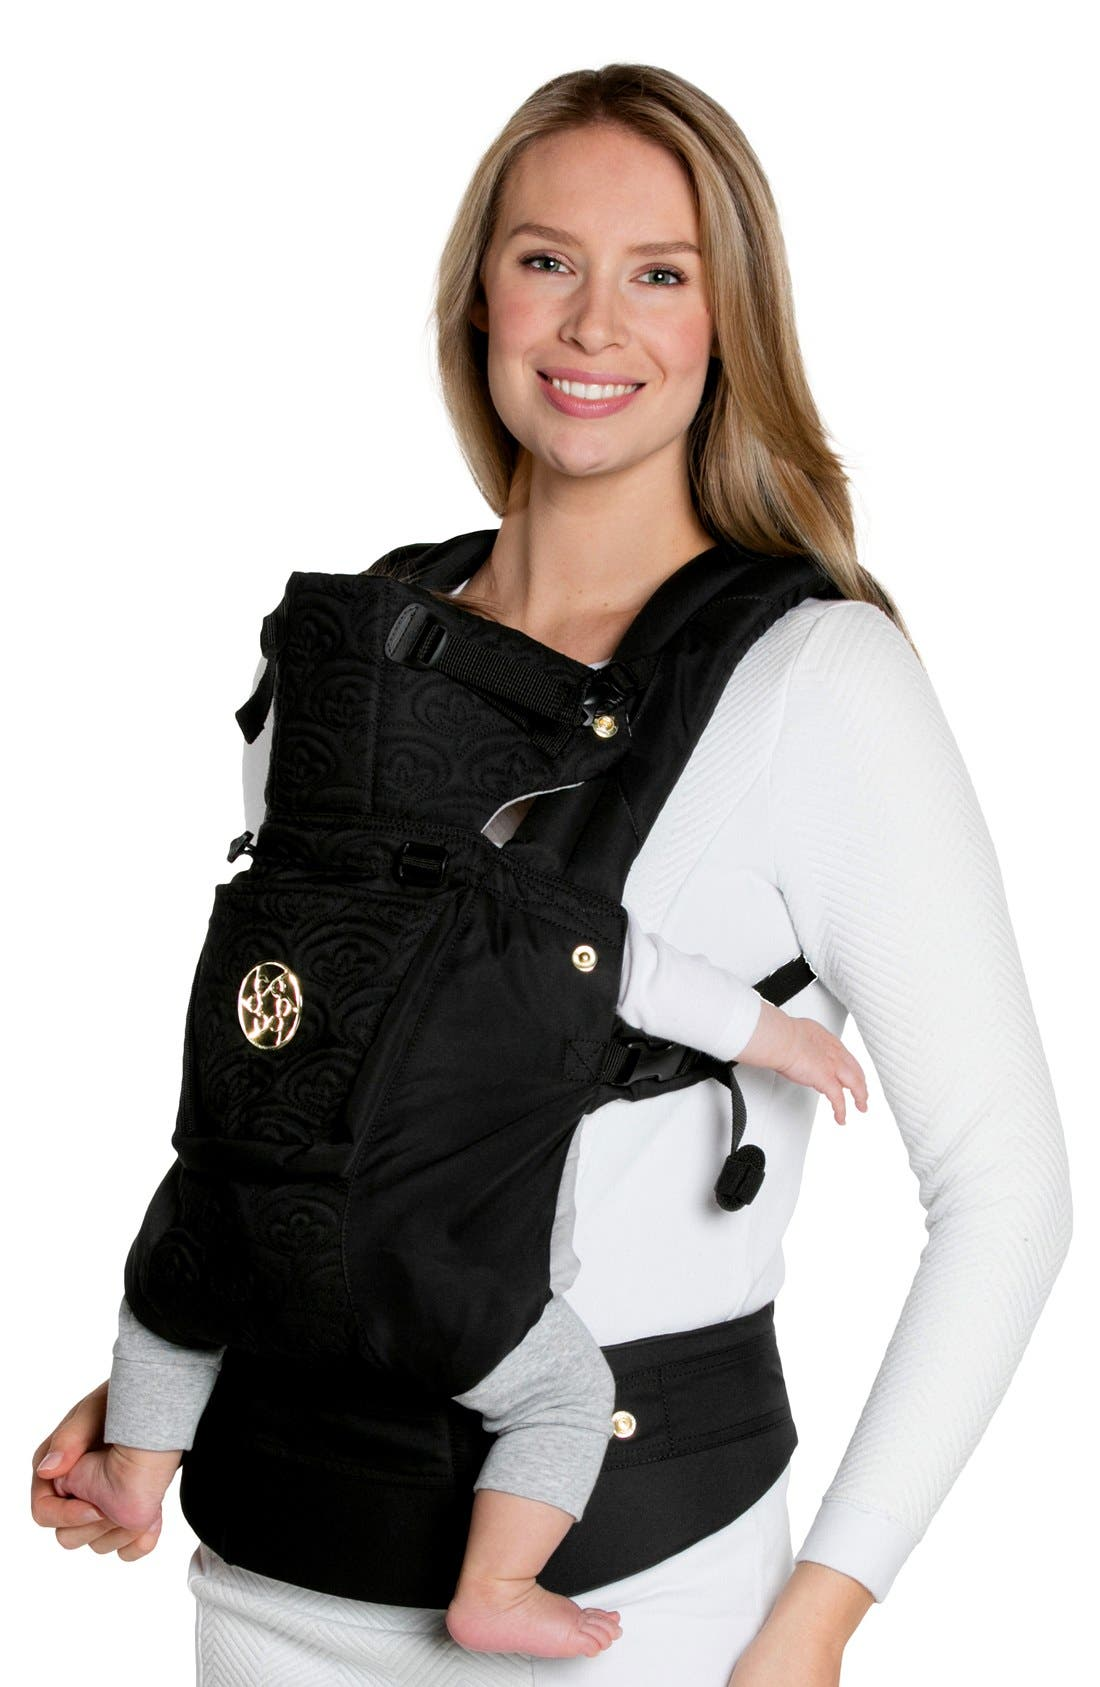 Alternate Image 1 Selected - LILLEbaby 'Complete Embossed Luxe' Baby Carrier